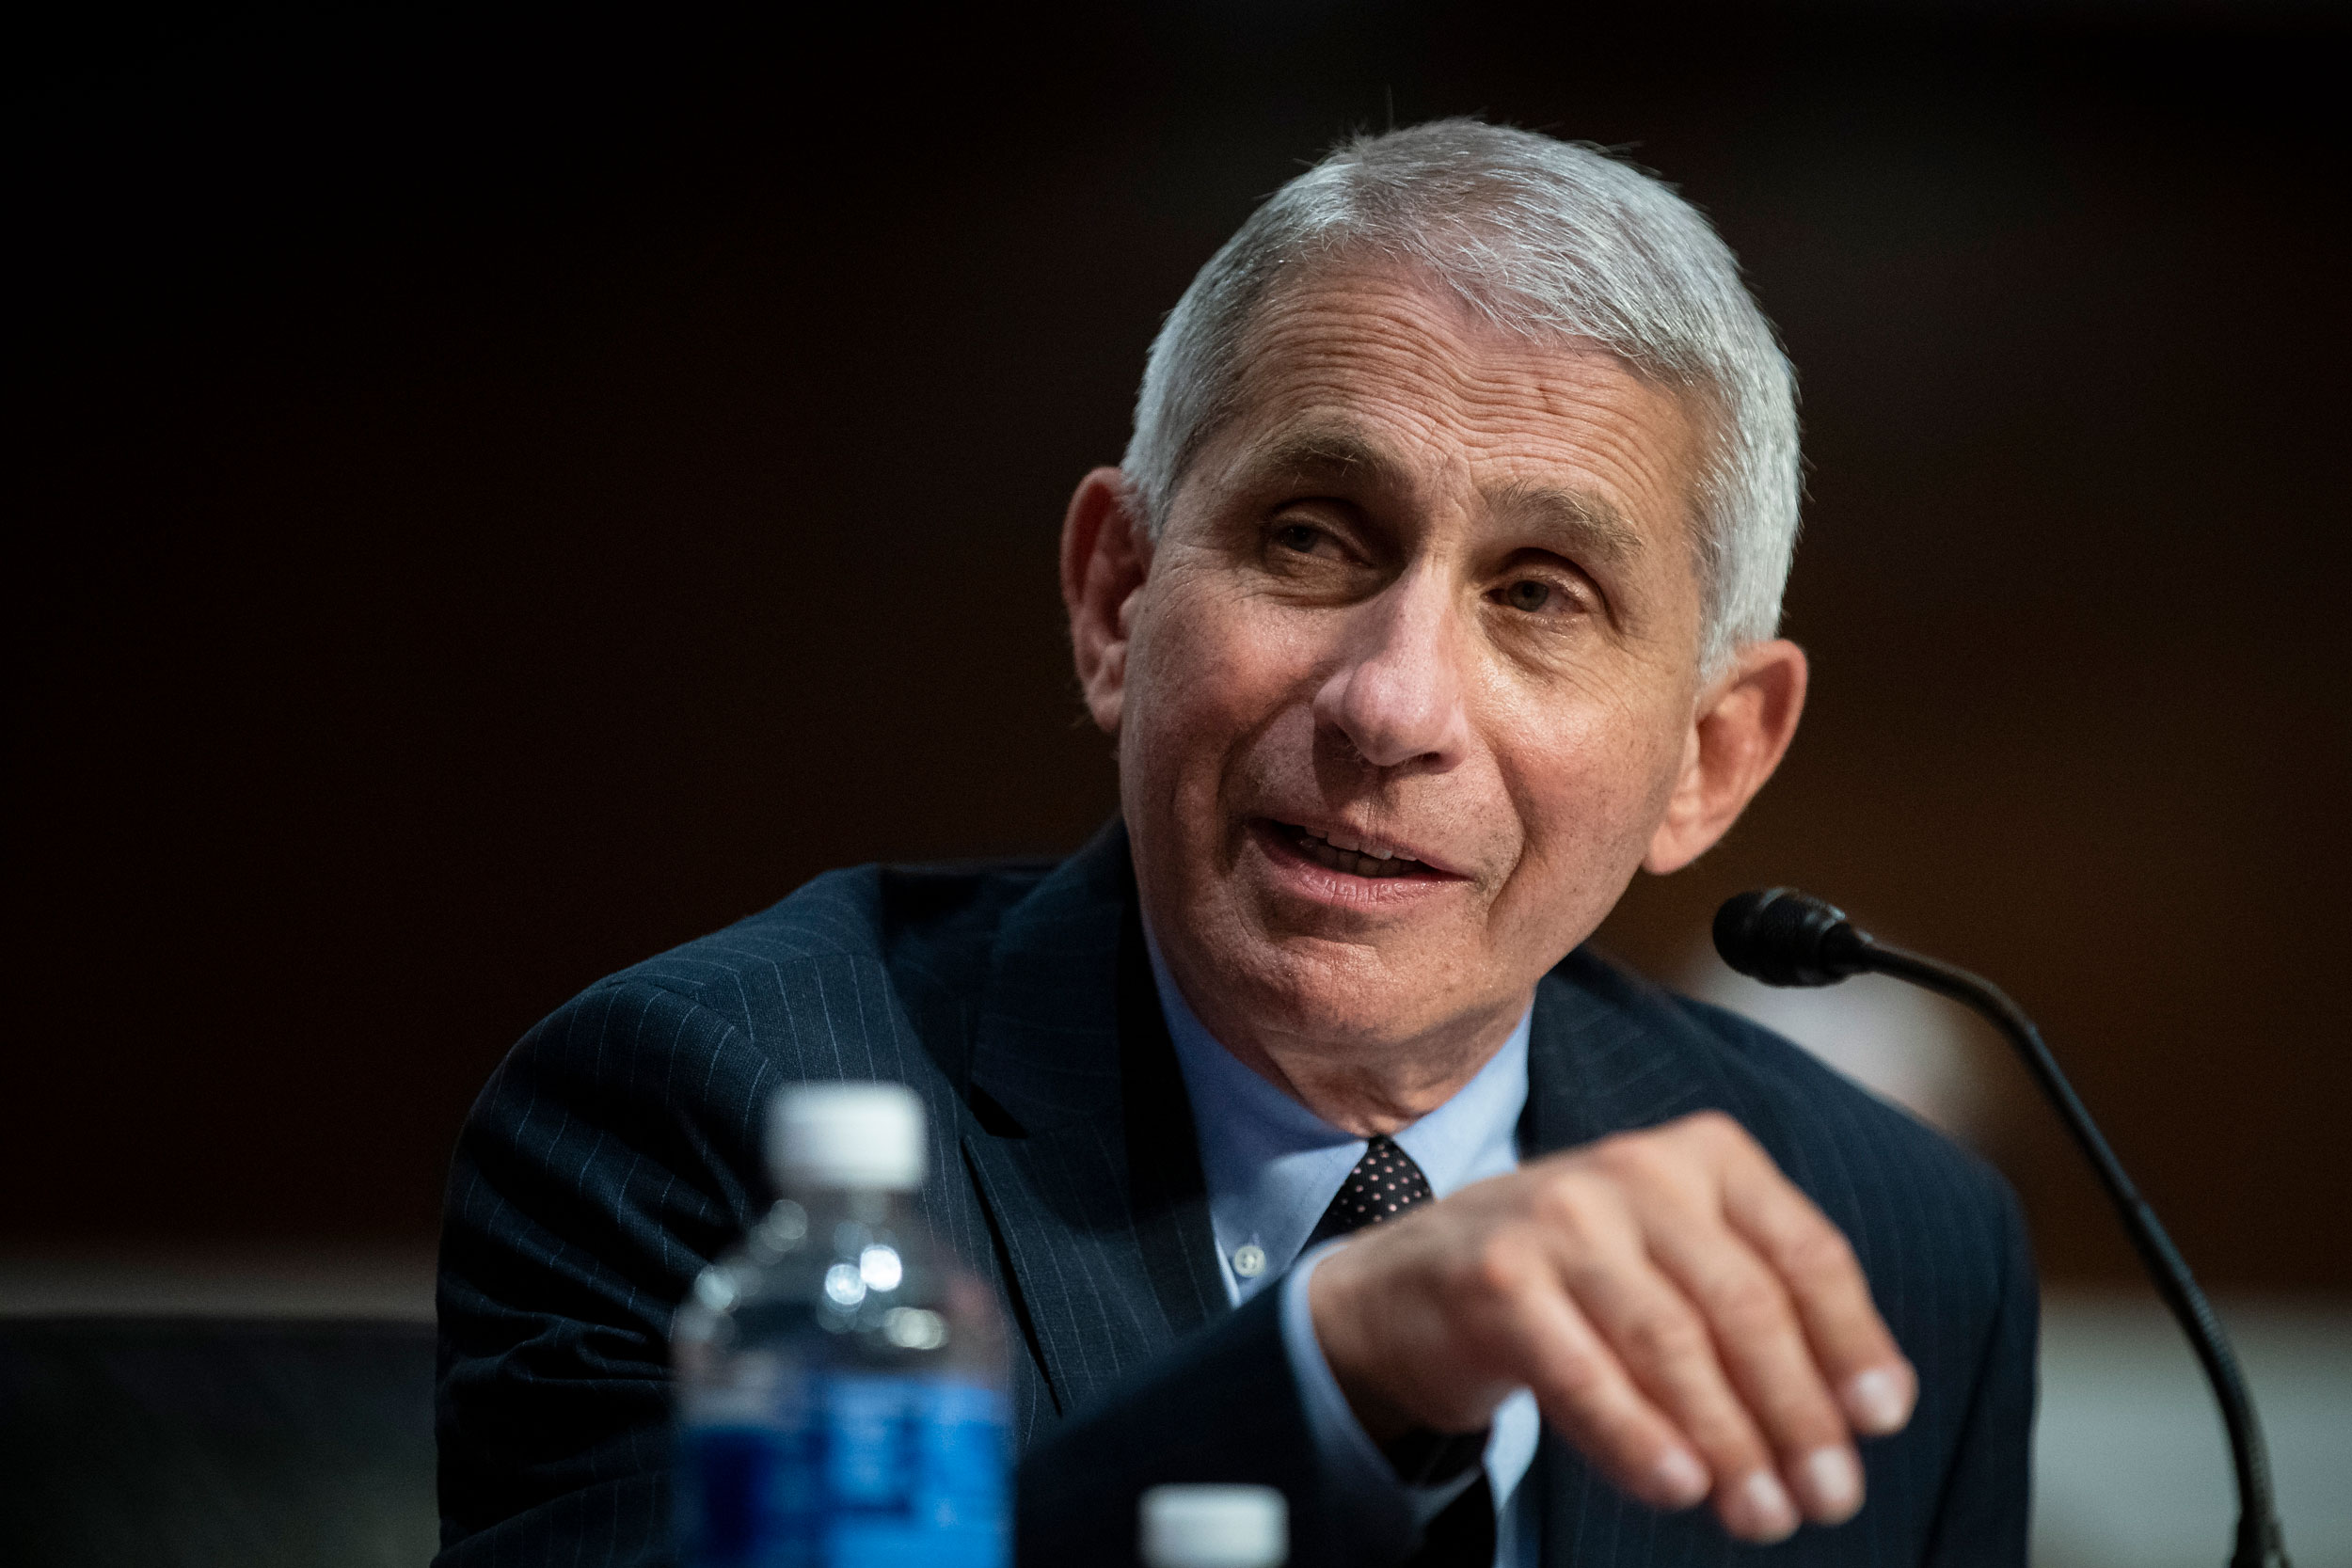 Dr. Anthony Fauci, director of the National Institute of Allergy and Infectious Diseases, speaks during a Senate Health, Education, Labor and Pensions Committee hearing on June 30 in Washington, DC.